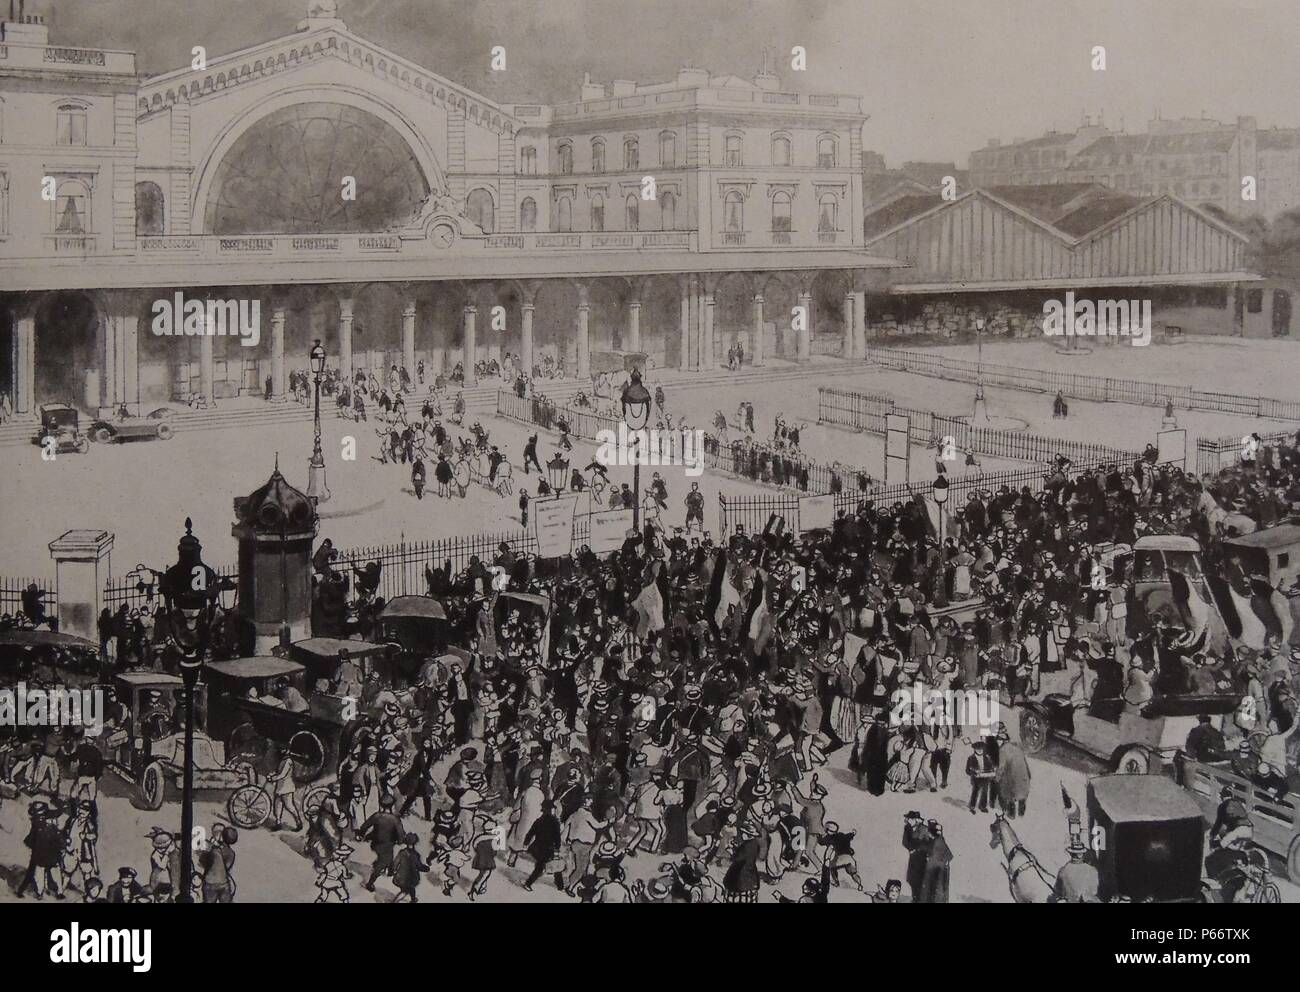 2nd august 1914: crowds waving off French recruits and conscripts as they leave the gare de l'Est in Paris for the frontlines, after the outbreak of World war One - Stock Image